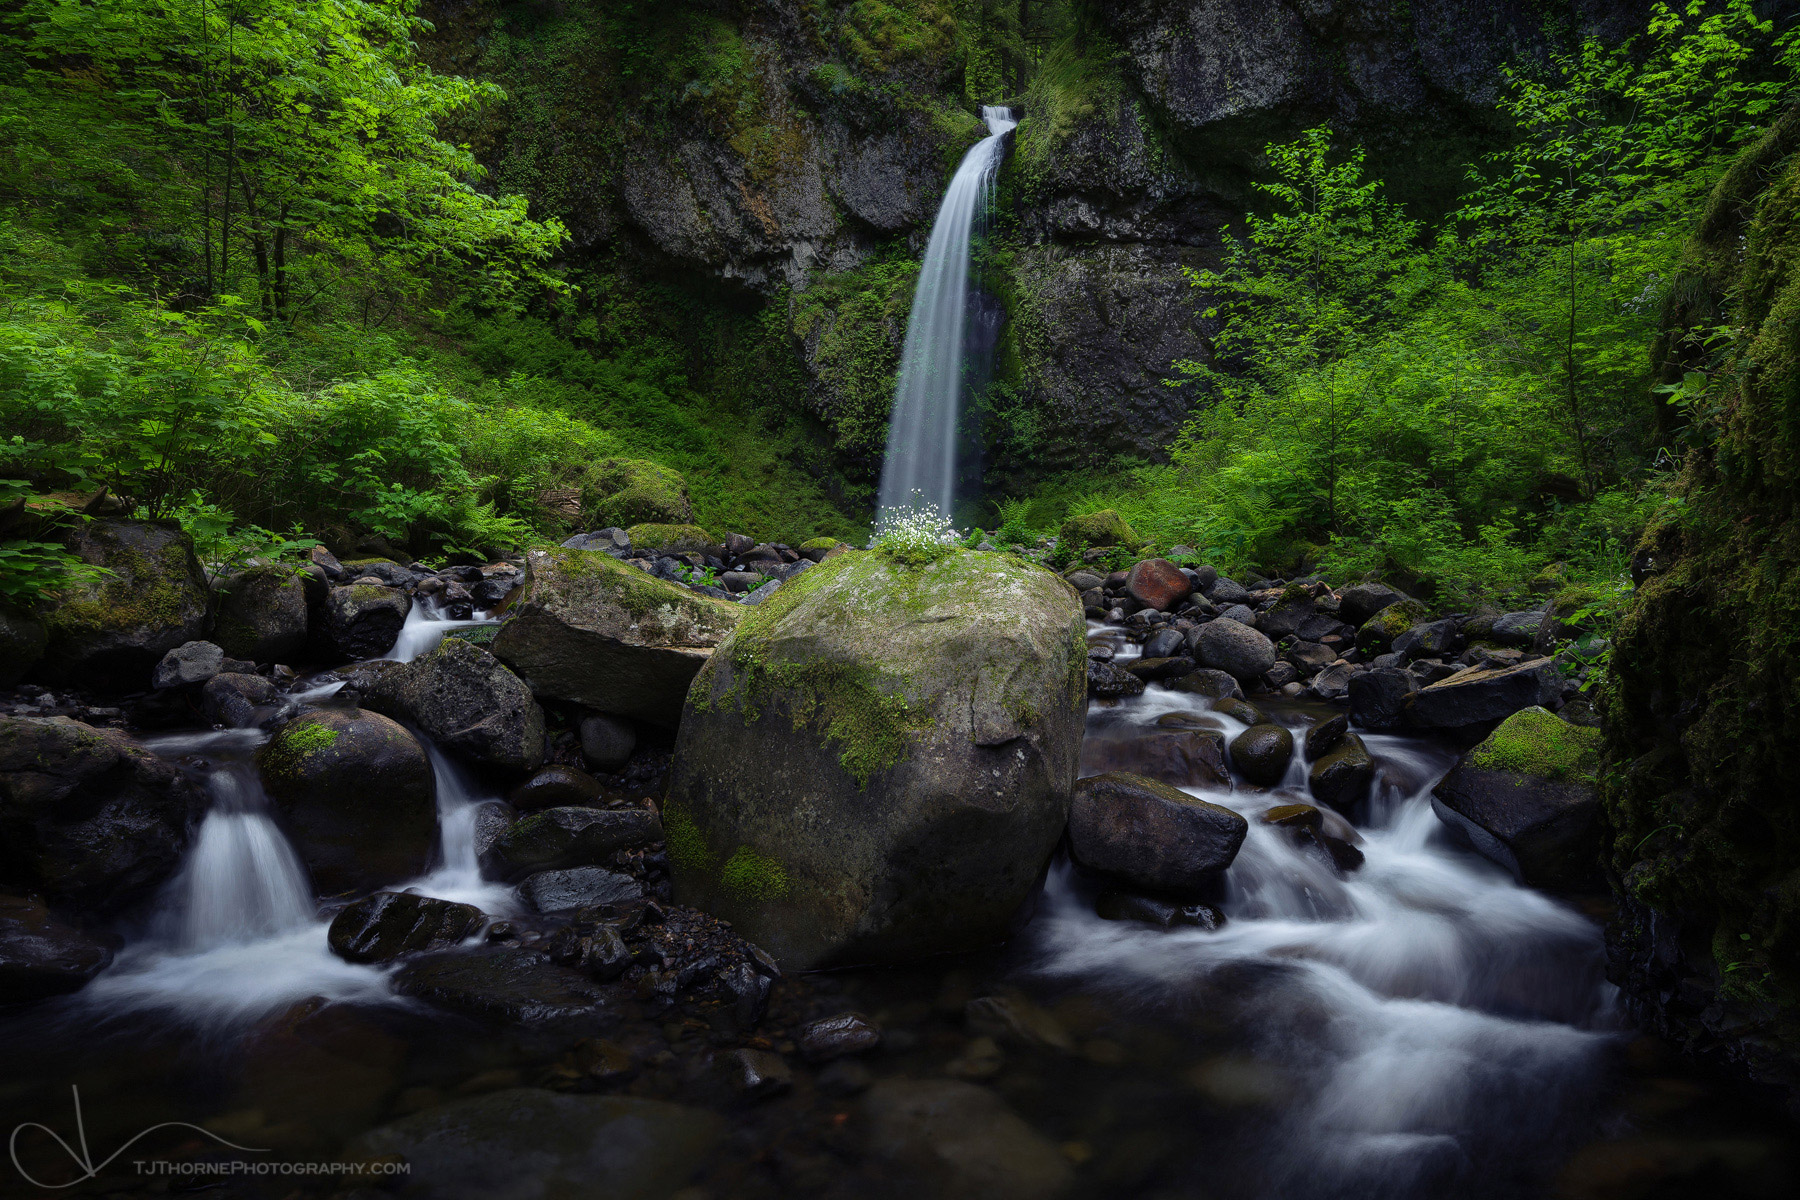 waterfall, stream, columbia river gorge, oregon, photo